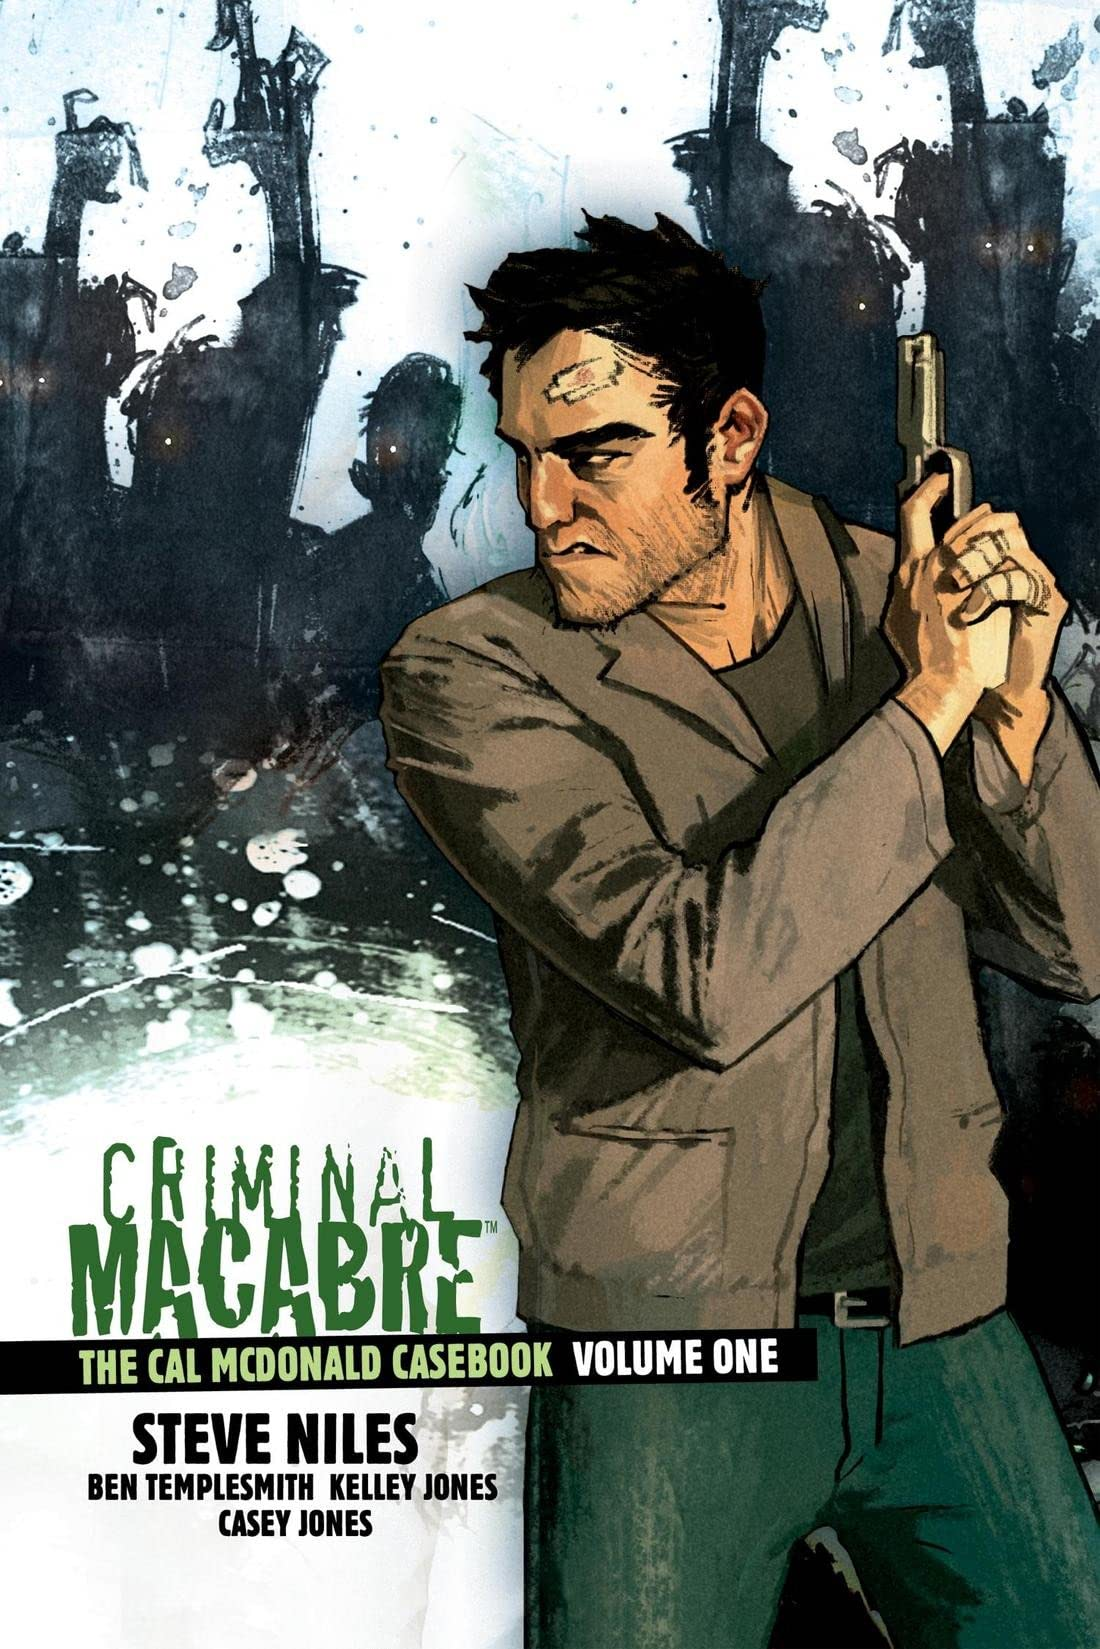 Criminal Macabre: The Cal McDonald Casebook Vol. 1